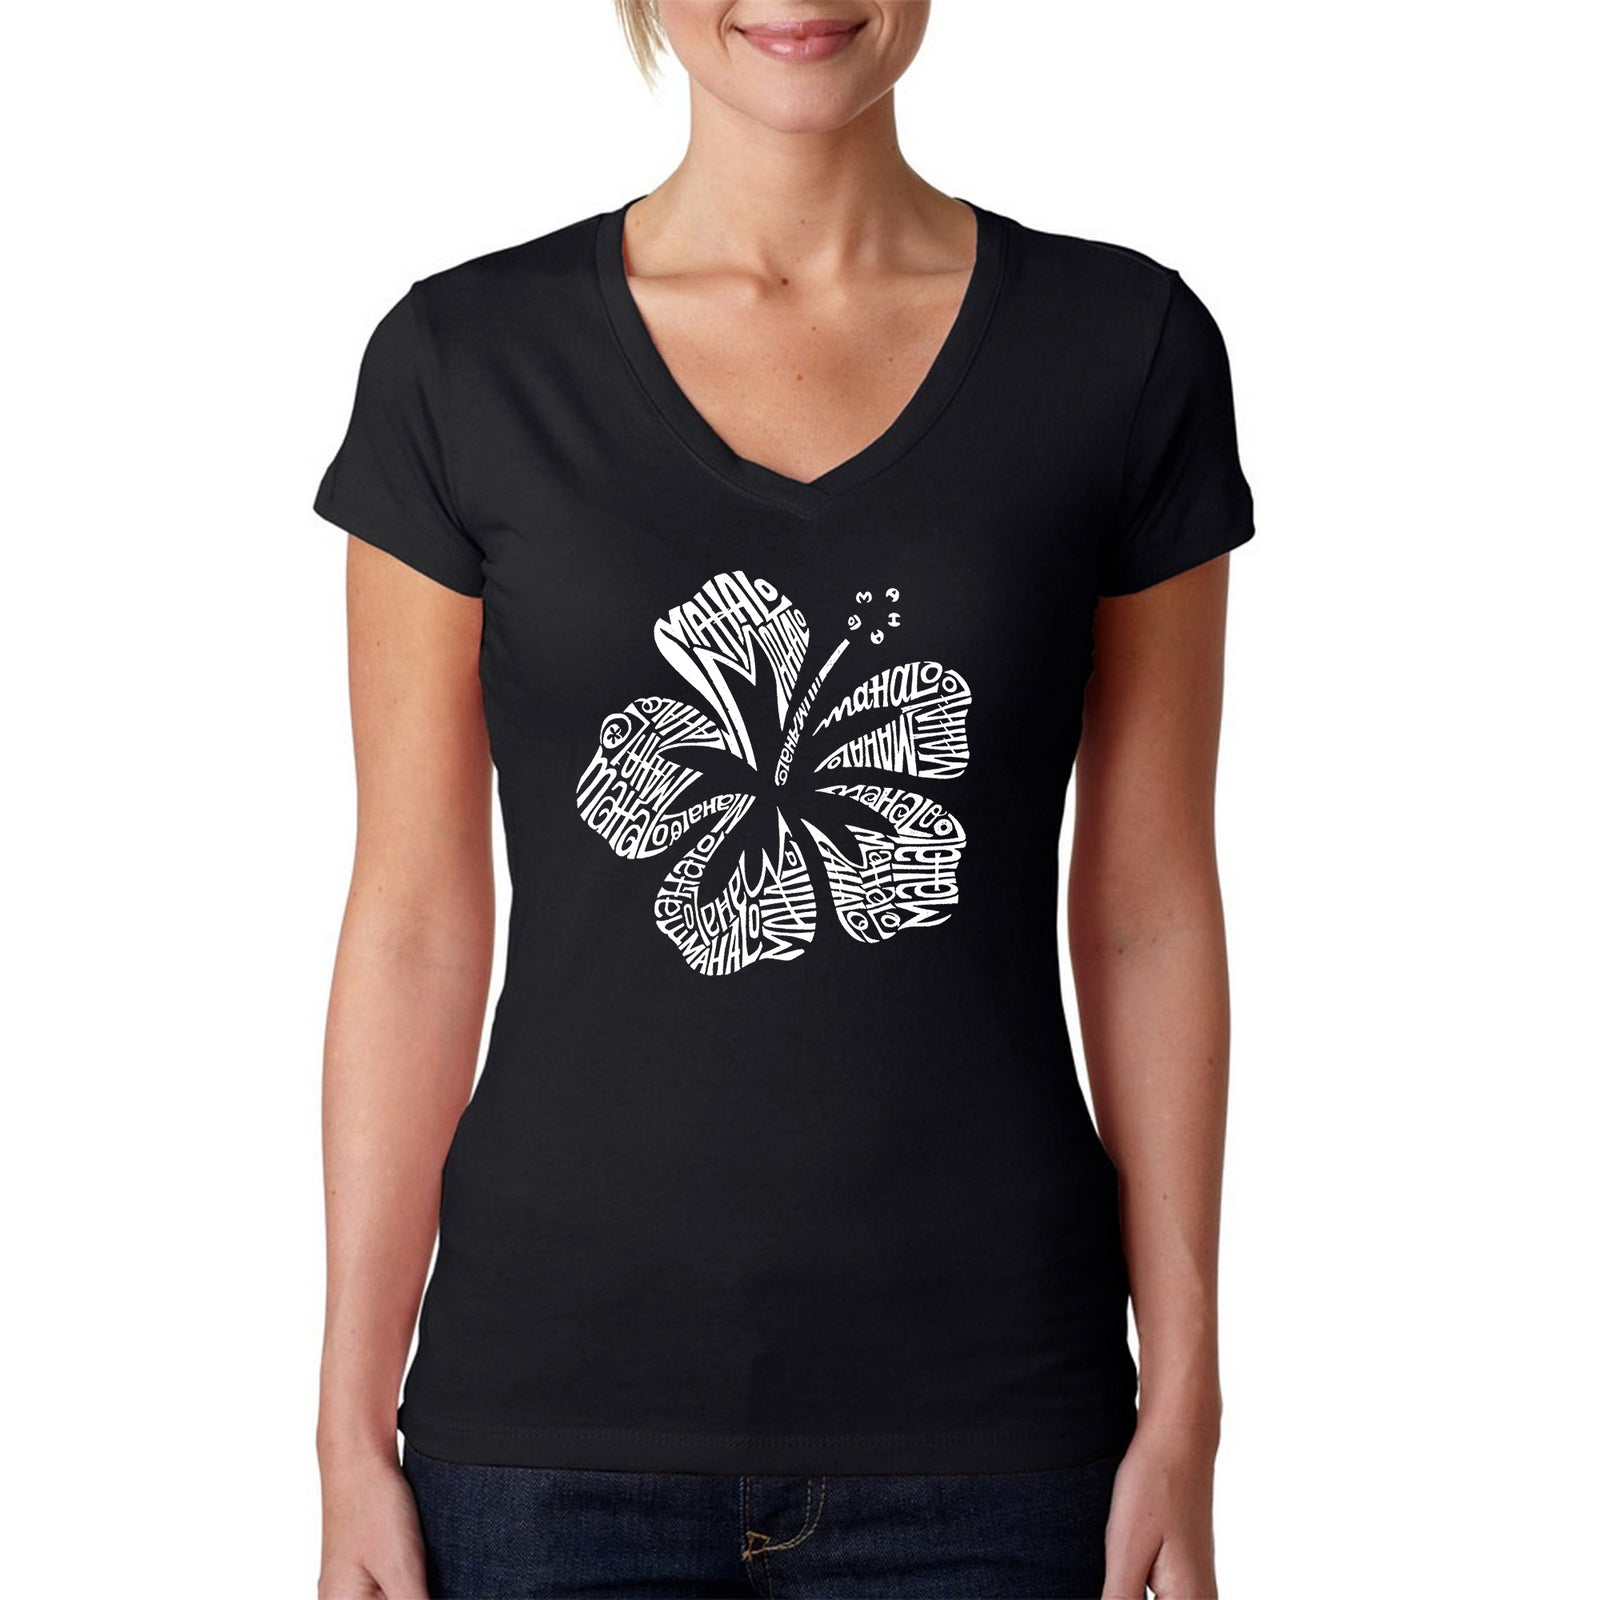 Women's V-Neck T-Shirt - Mahalo